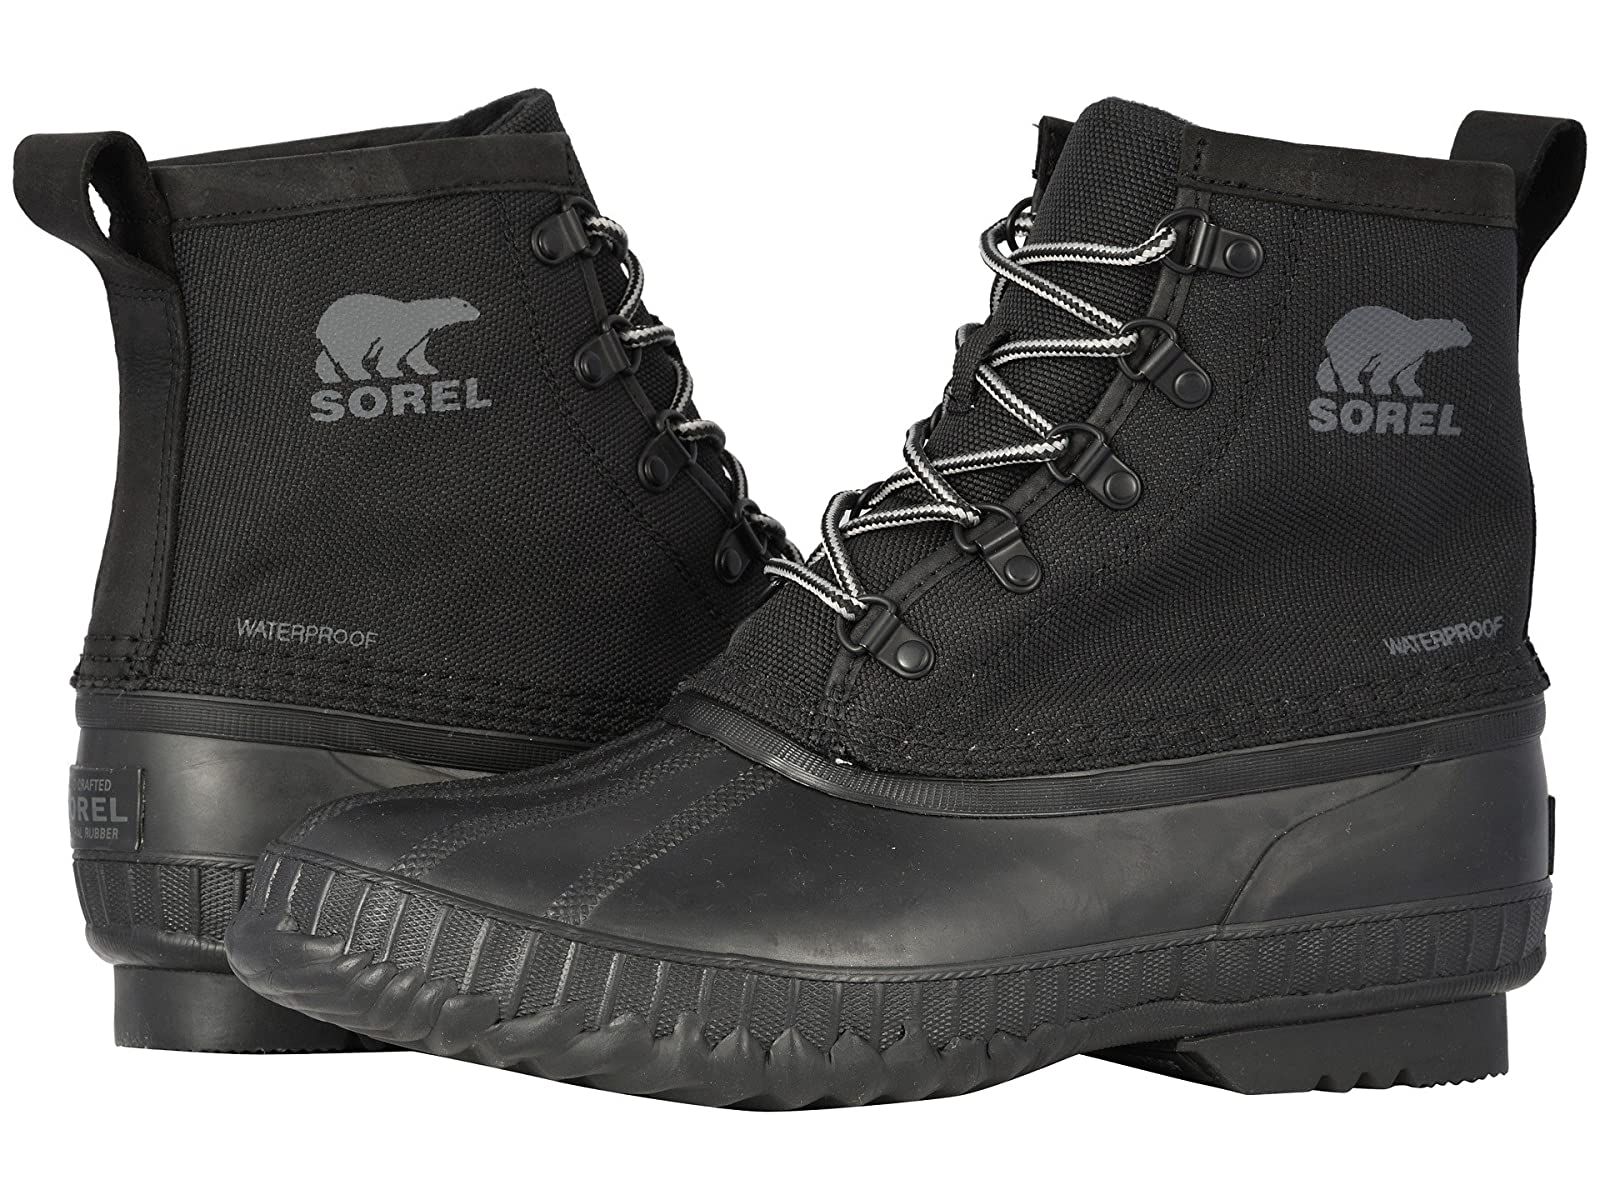 SOREL Ankeny™ Mid HikerEconomical and quality shoes